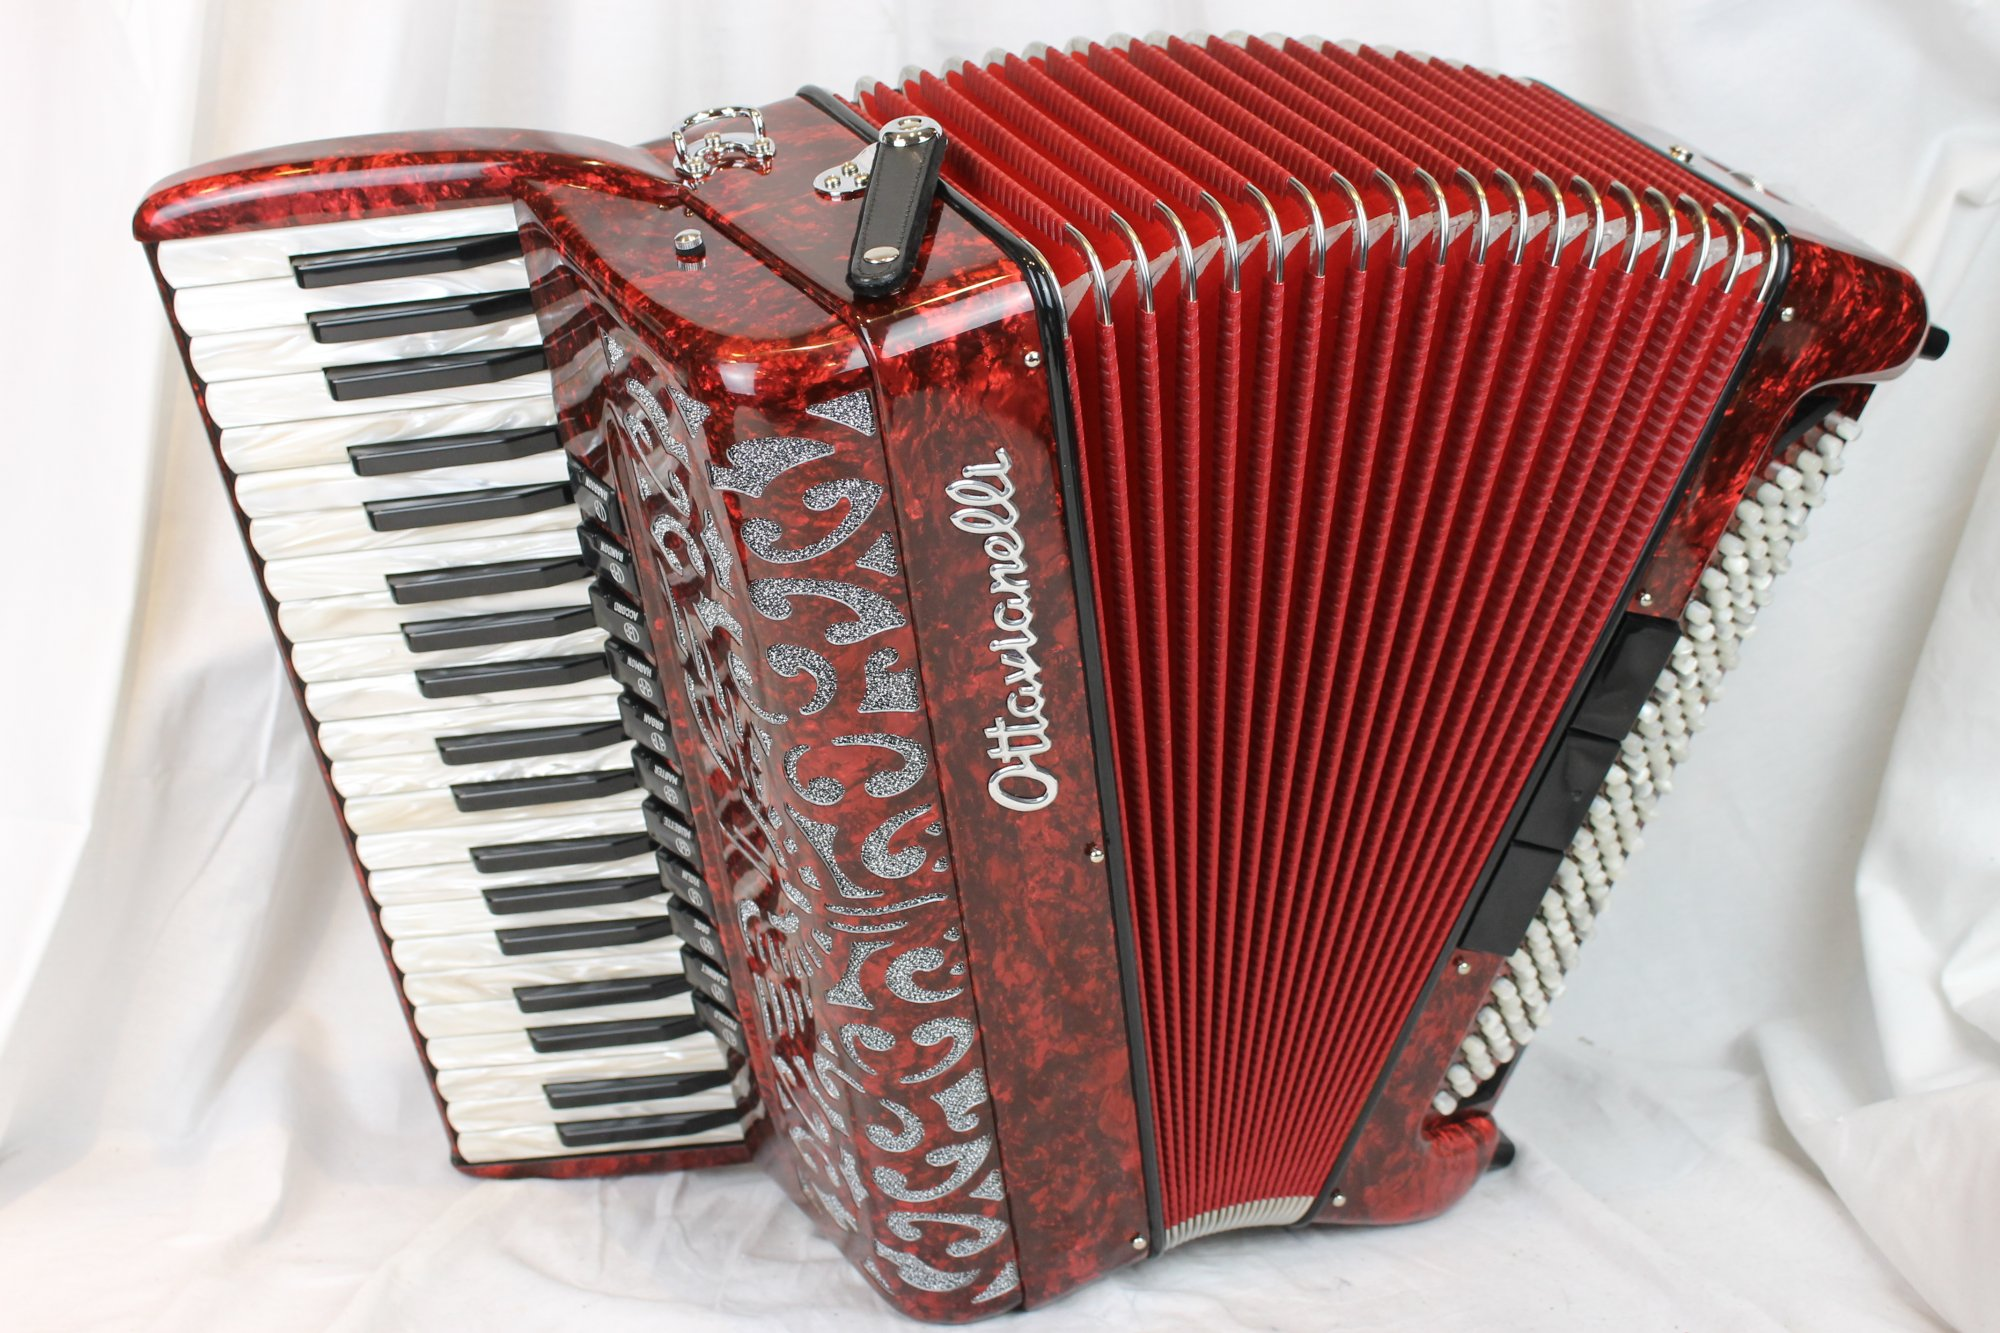 NEW Fiero Ottavianelli Principessa II Piano Accordion LMMH 41 120